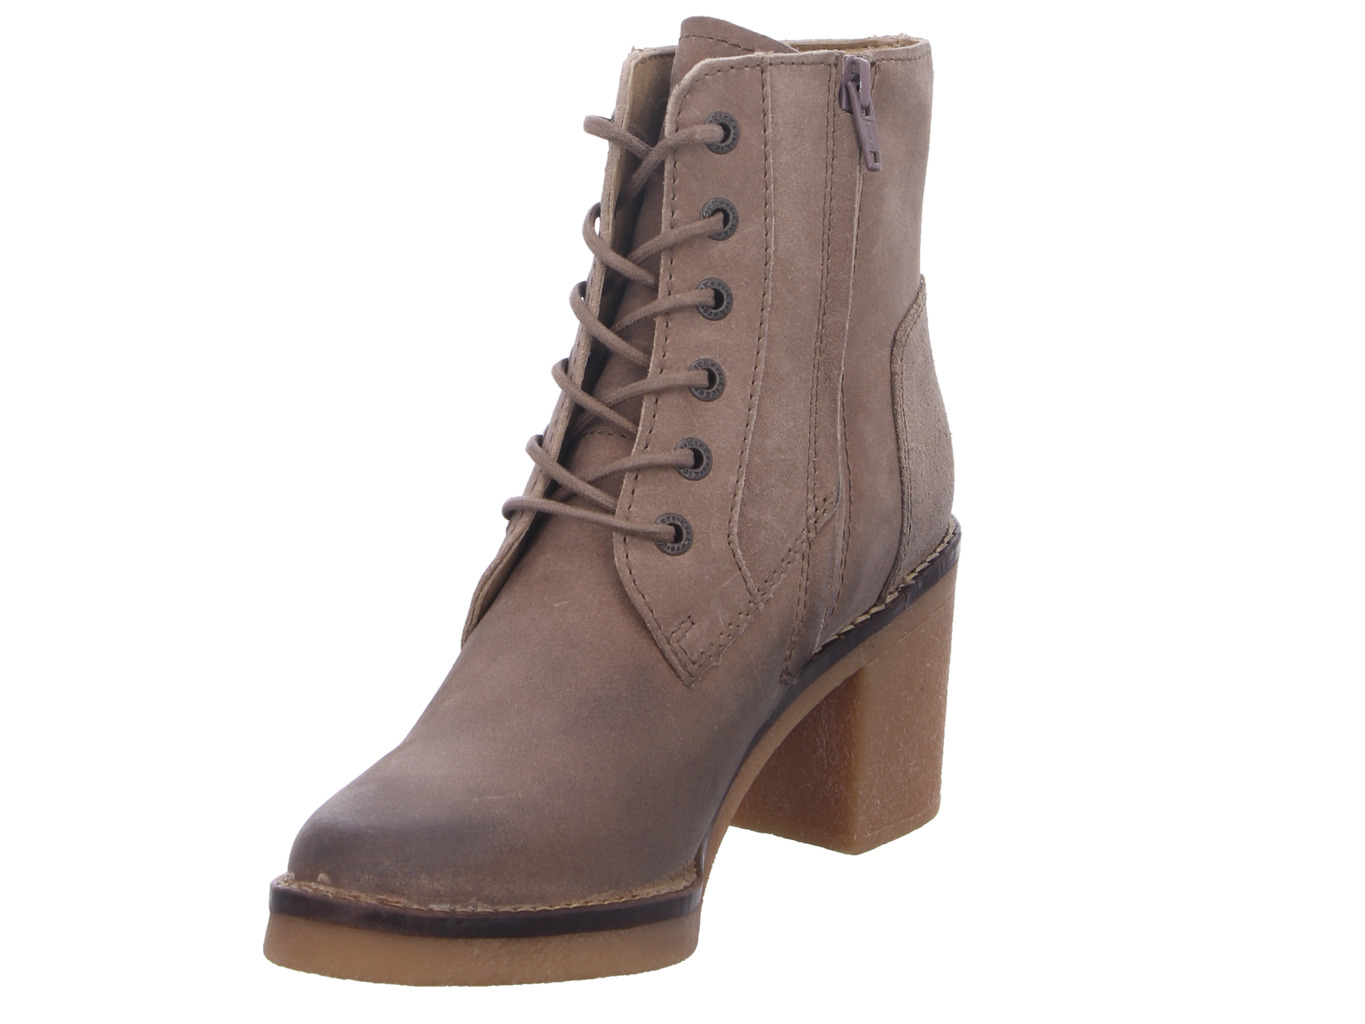 kickers_averne_taupe_827980_50_121_1147